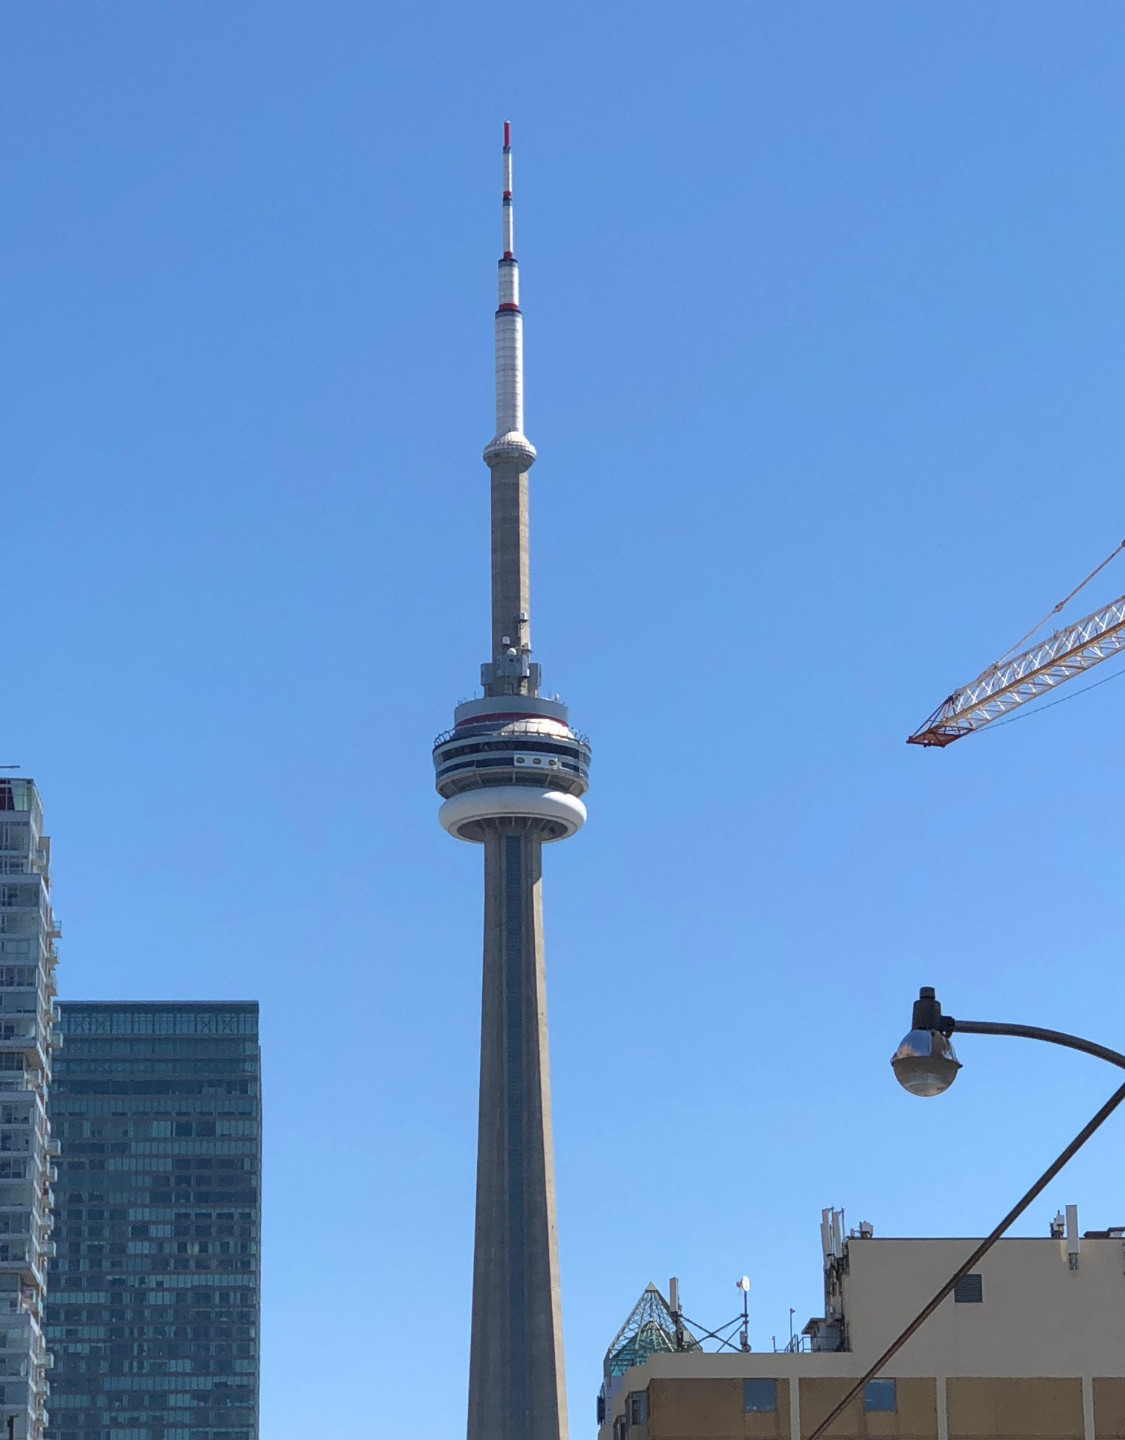 Day 1: CN Tower